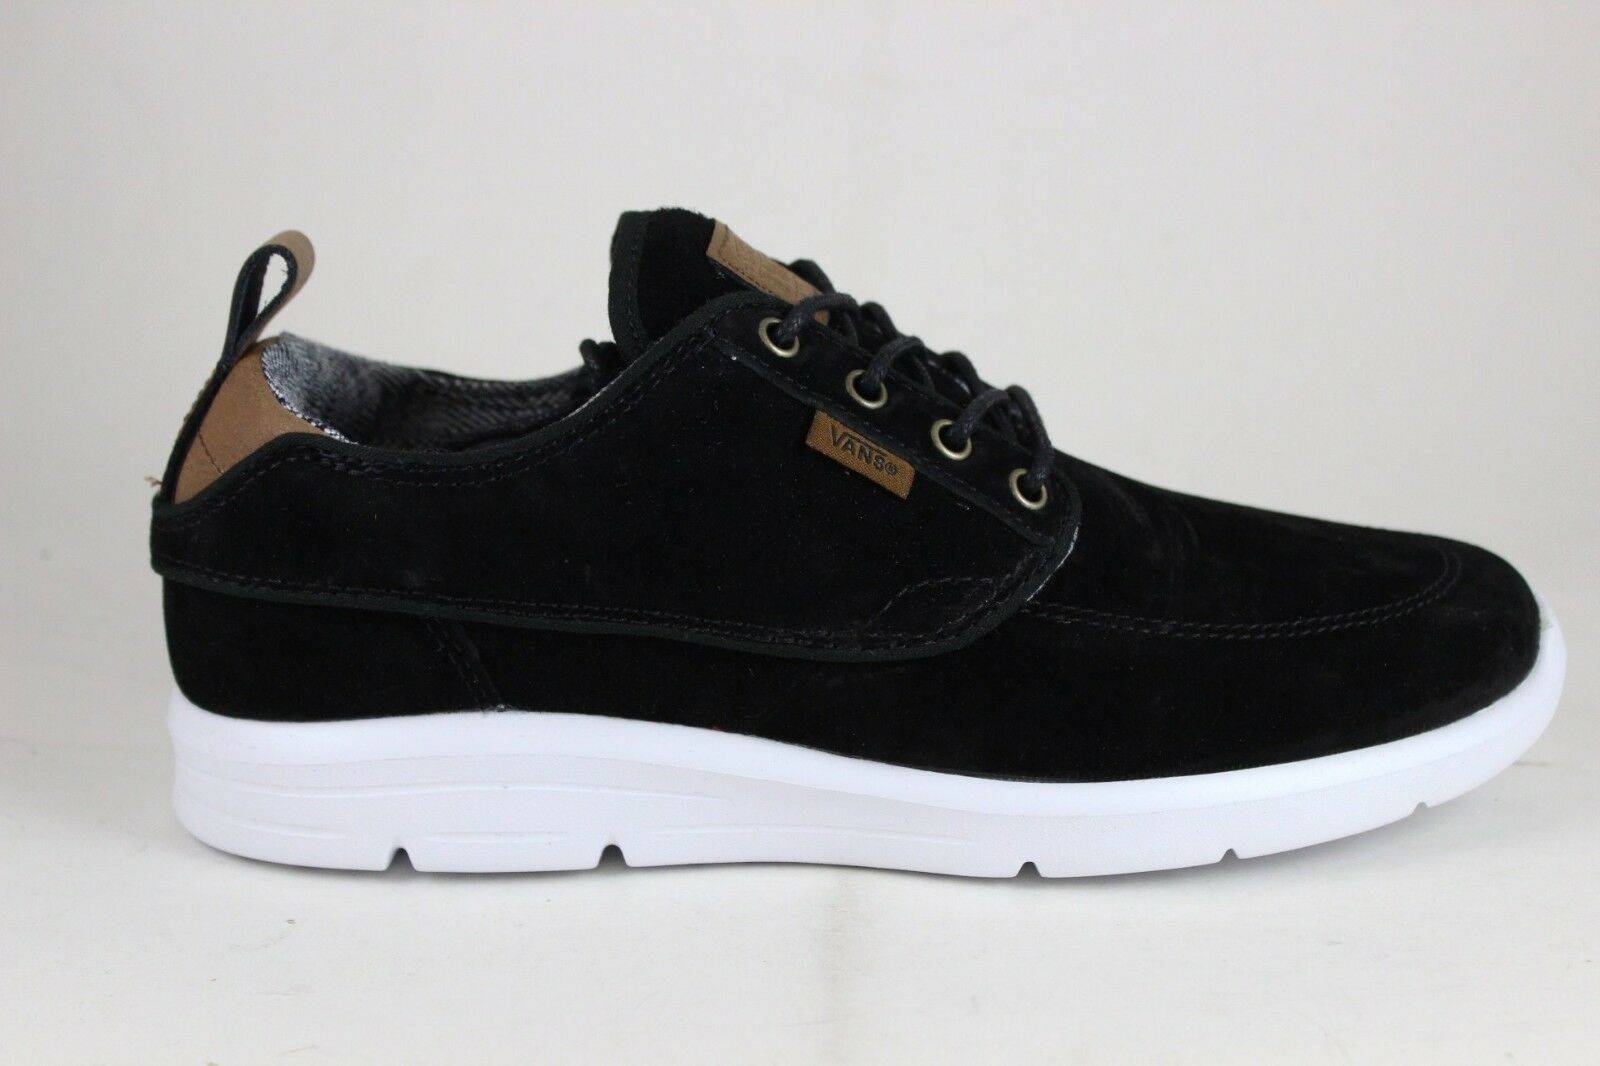 Vans Men's Brigata Lite Black White VN0A2Z5LJWH Brand New